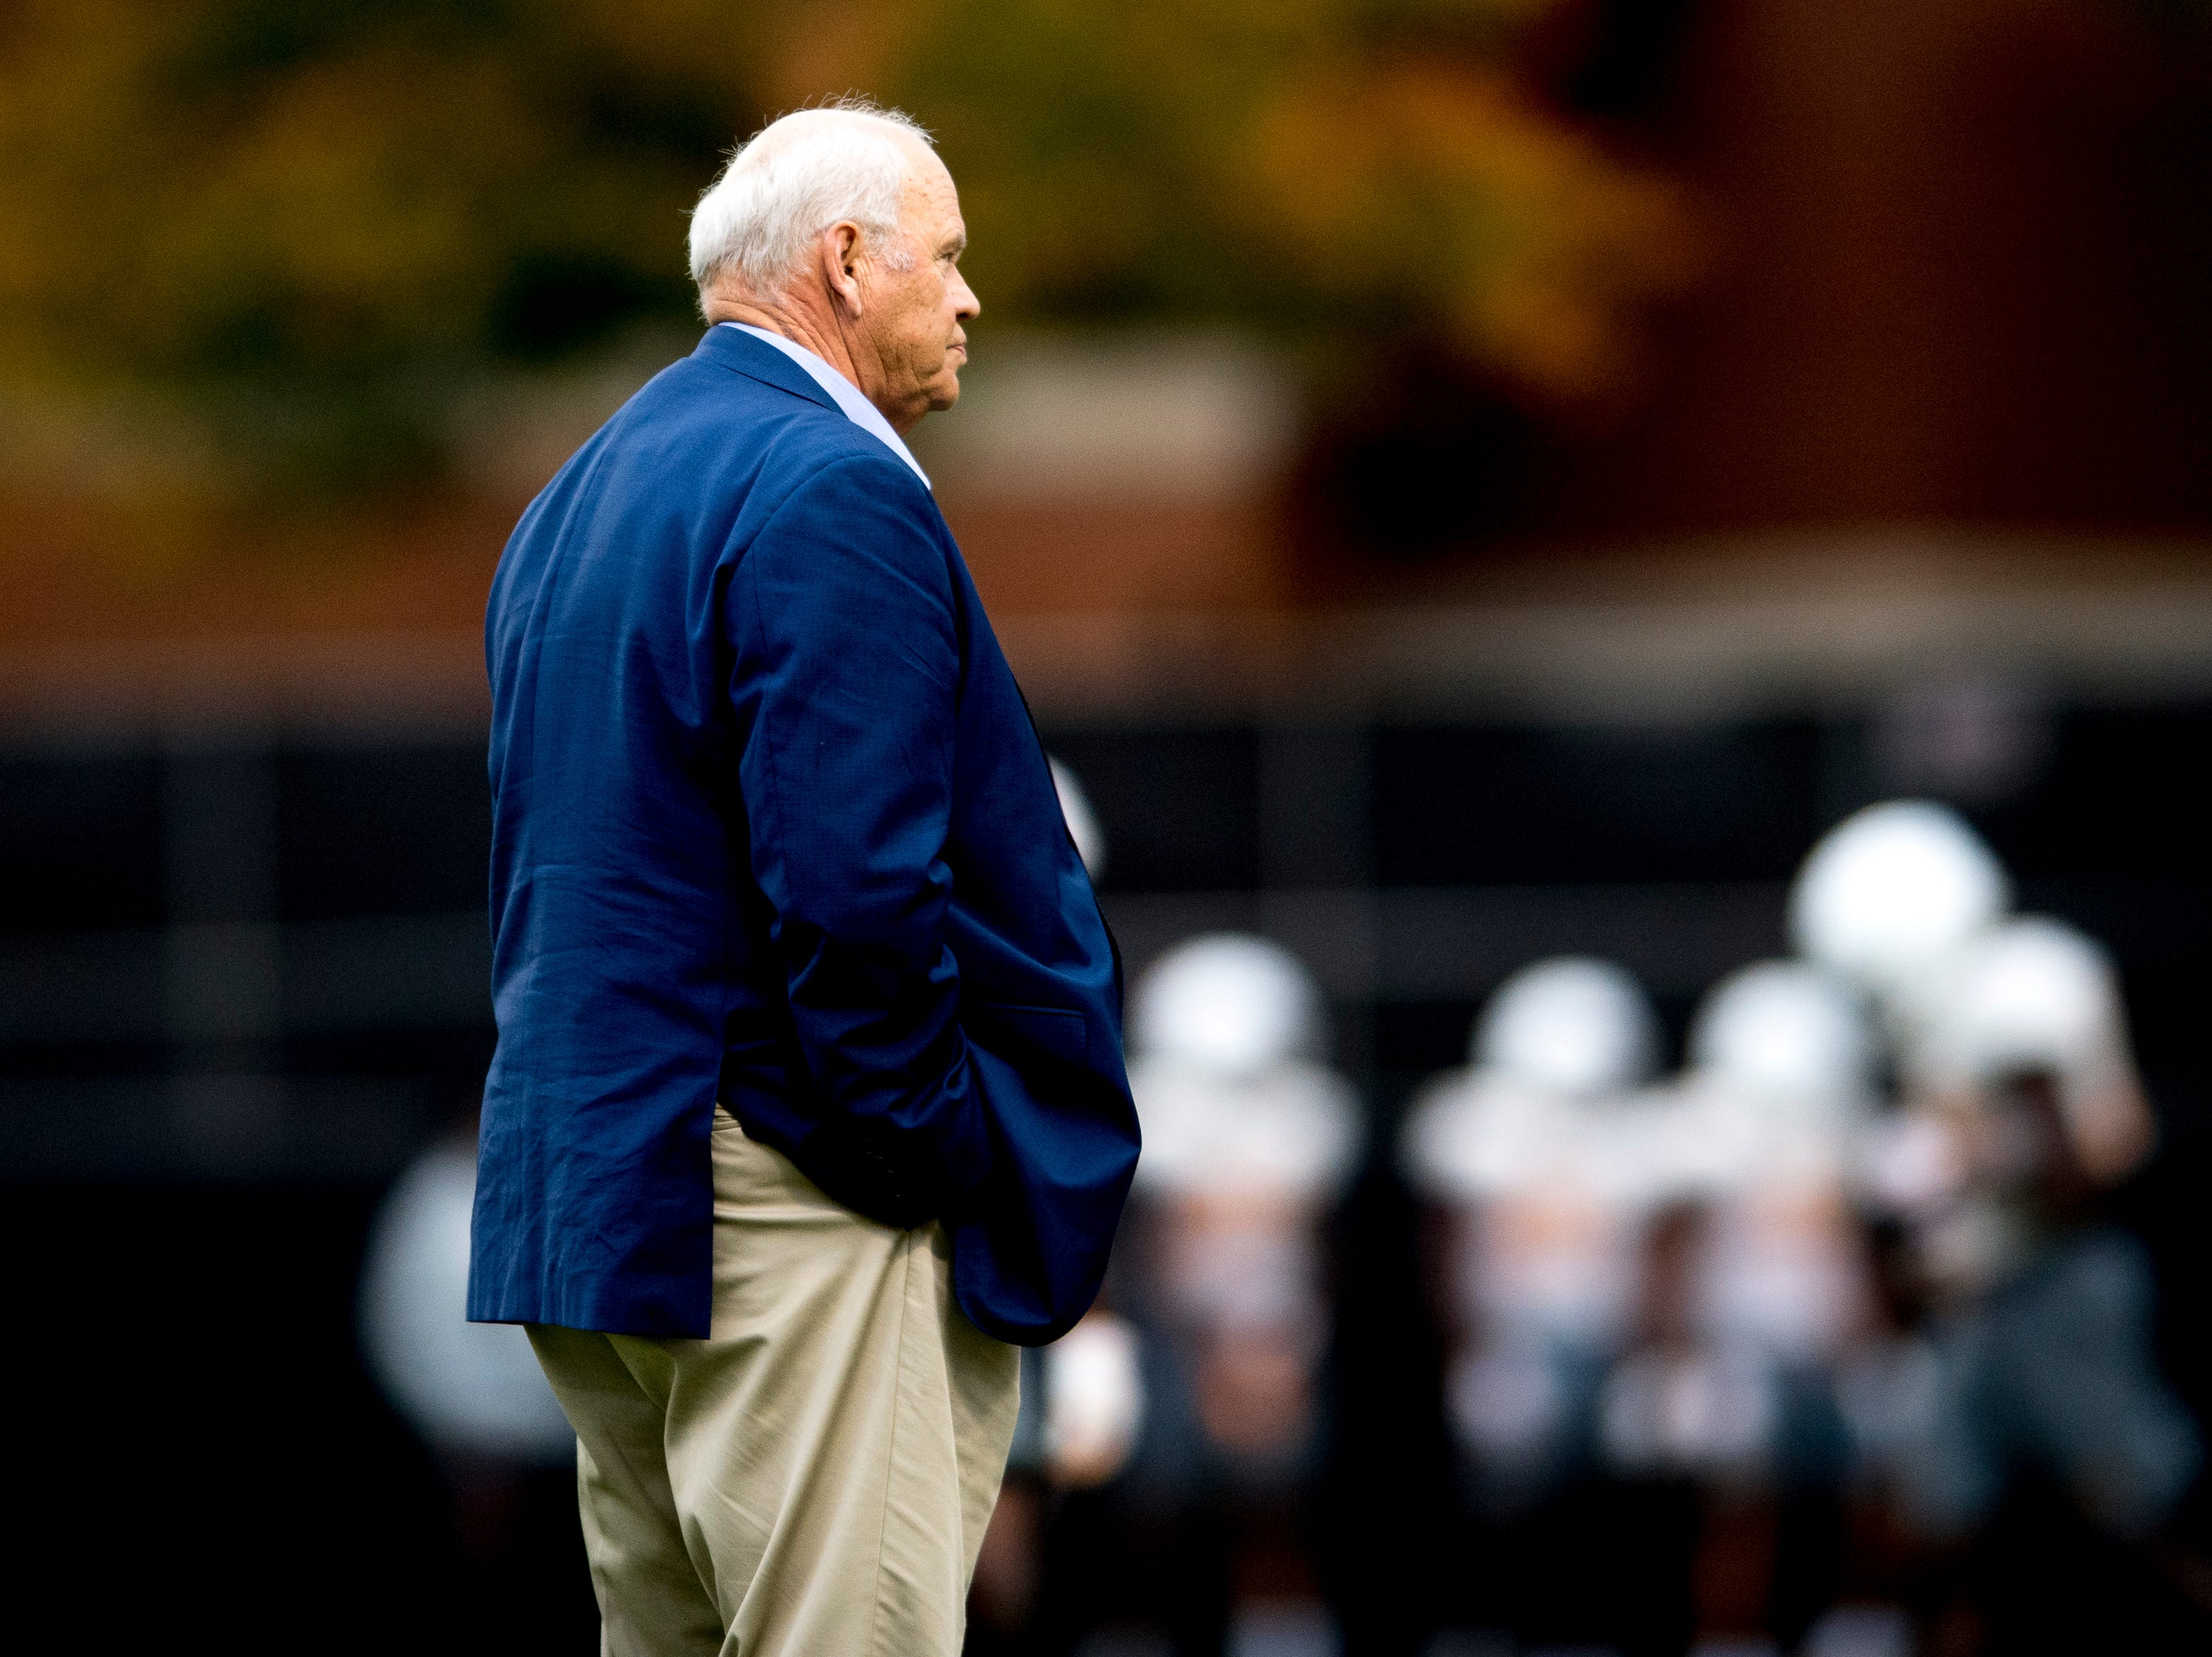 Tennessee Director of Athletics Phillip Fulmer watches the team practice during Tennessee fall football practice at Haslam Field in Knoxville, Tennessee on Wednesday, November 7, 2018.